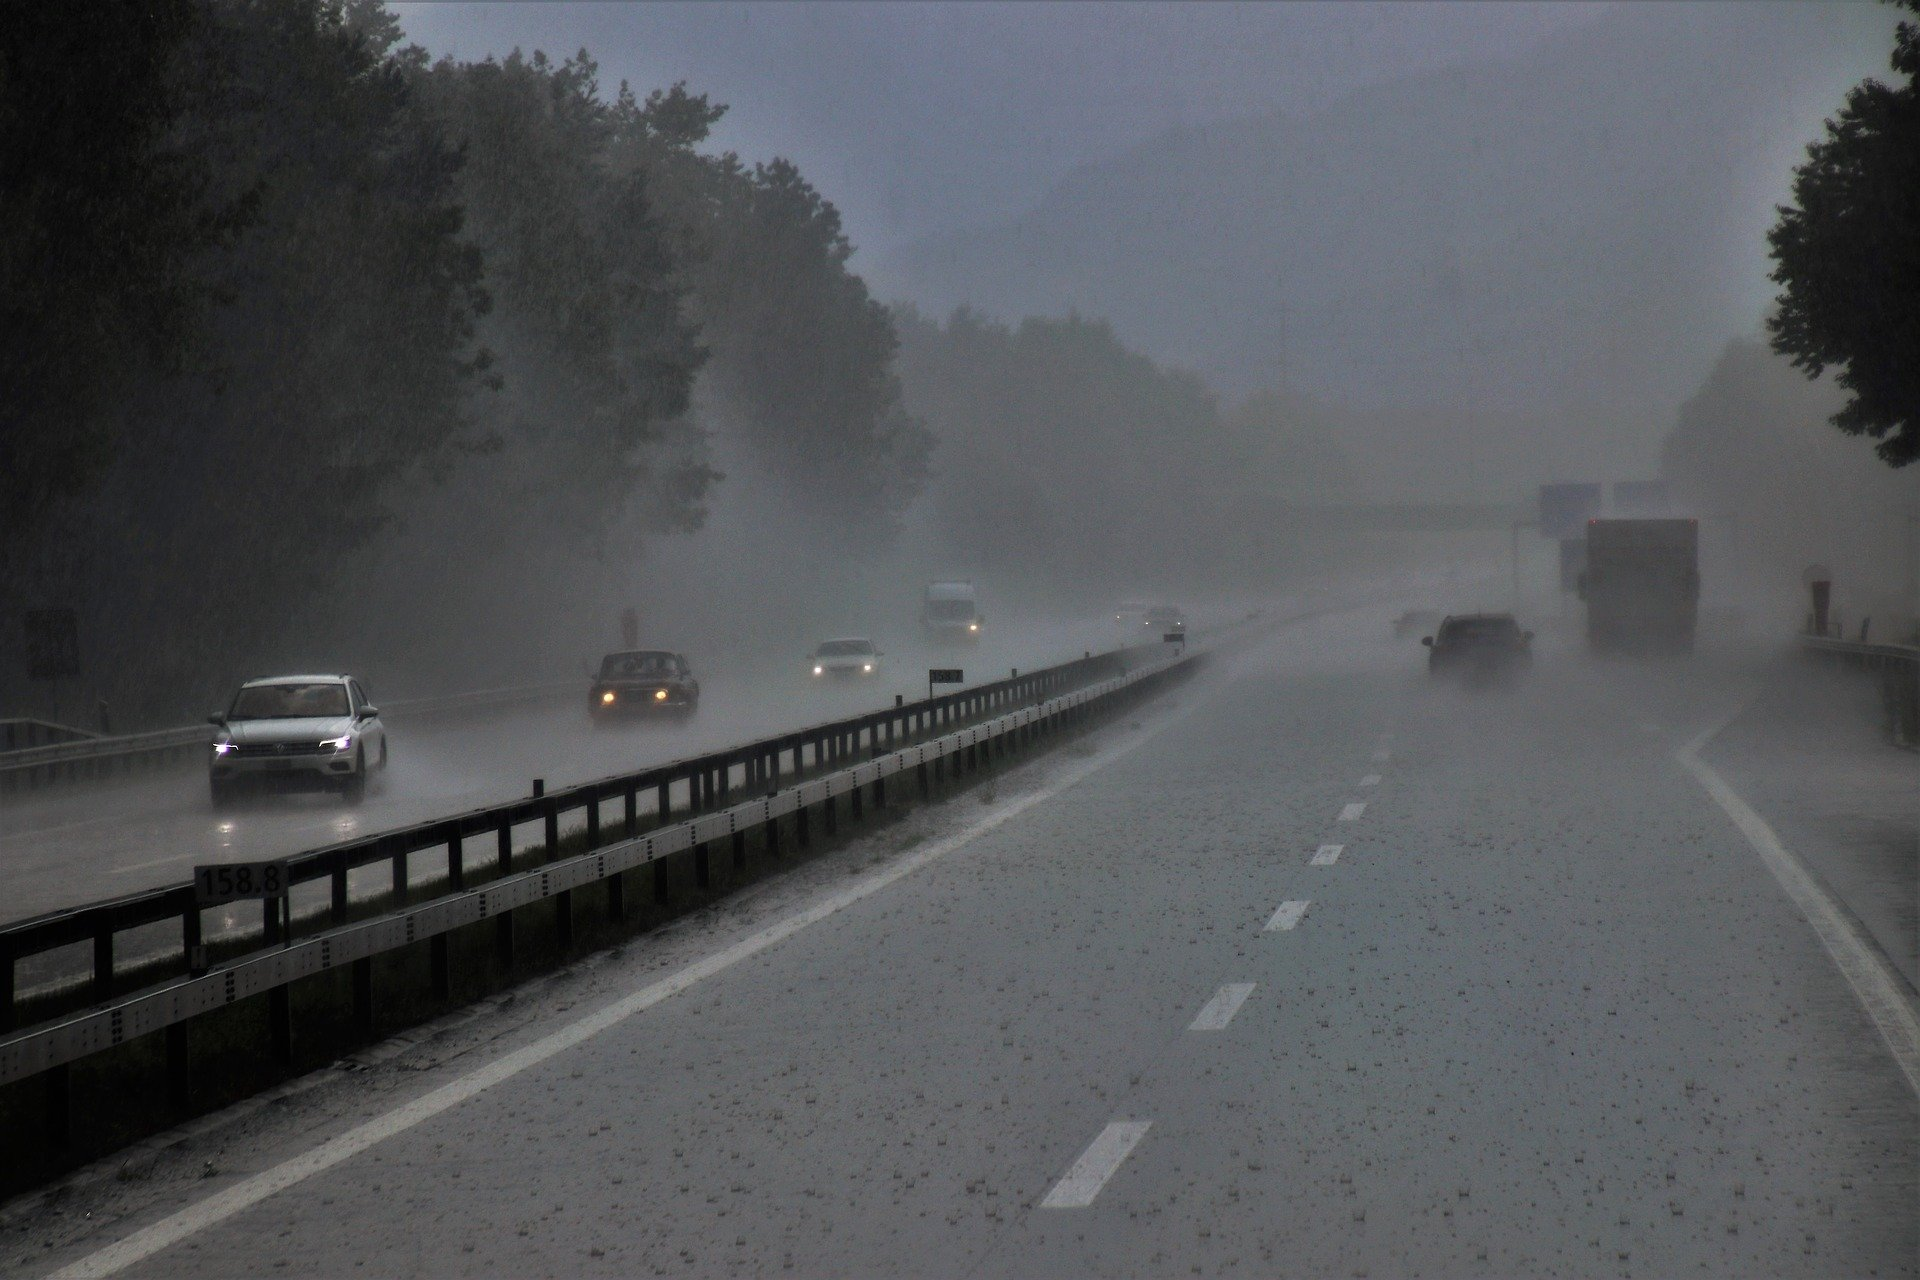 Pictured - Vehicles traveling on the highway during the rain and misty conditions | Source: Pixabay